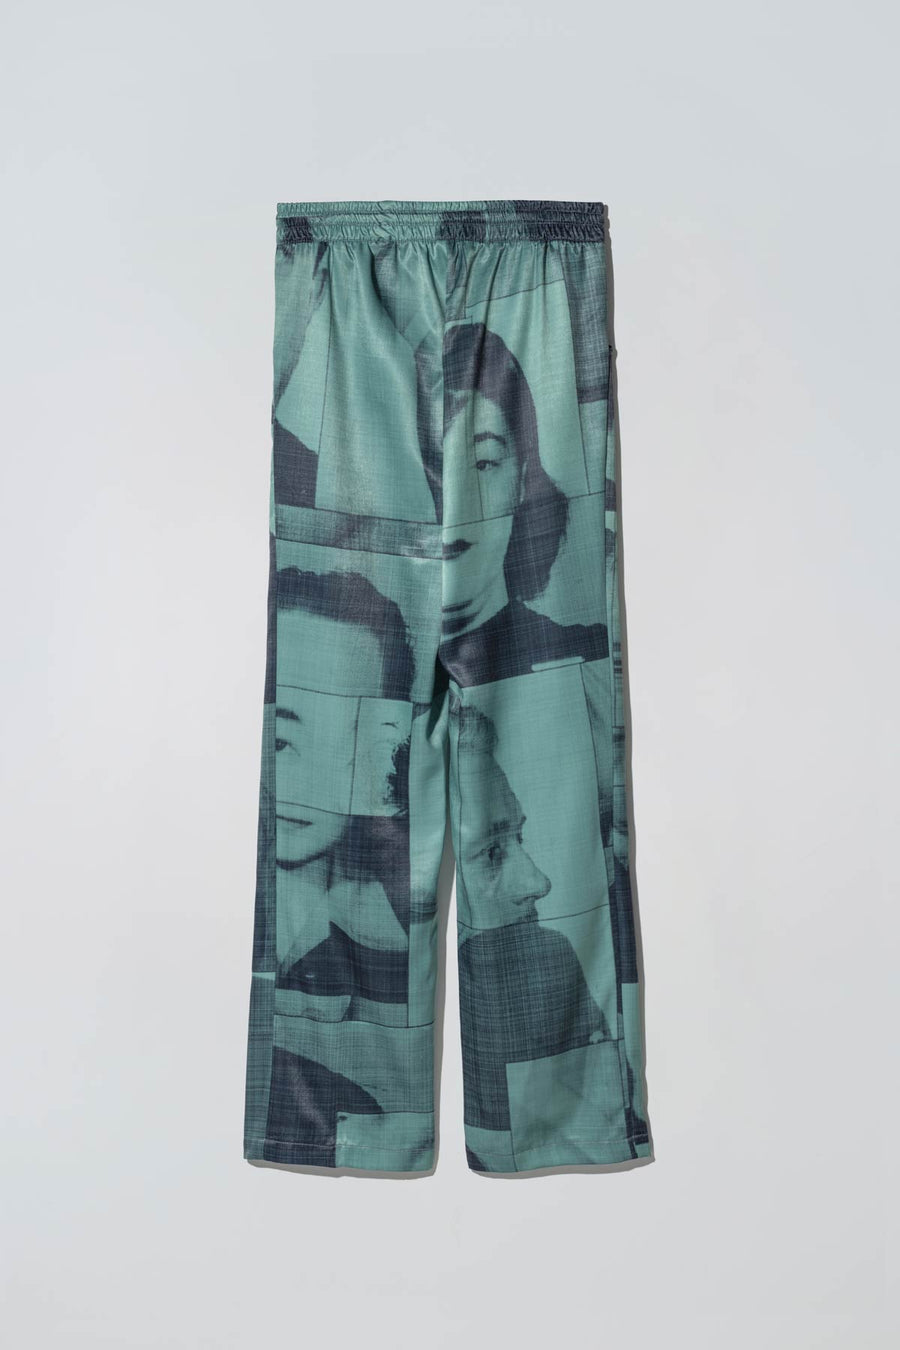 Black List Print Liberty Suitpants Green